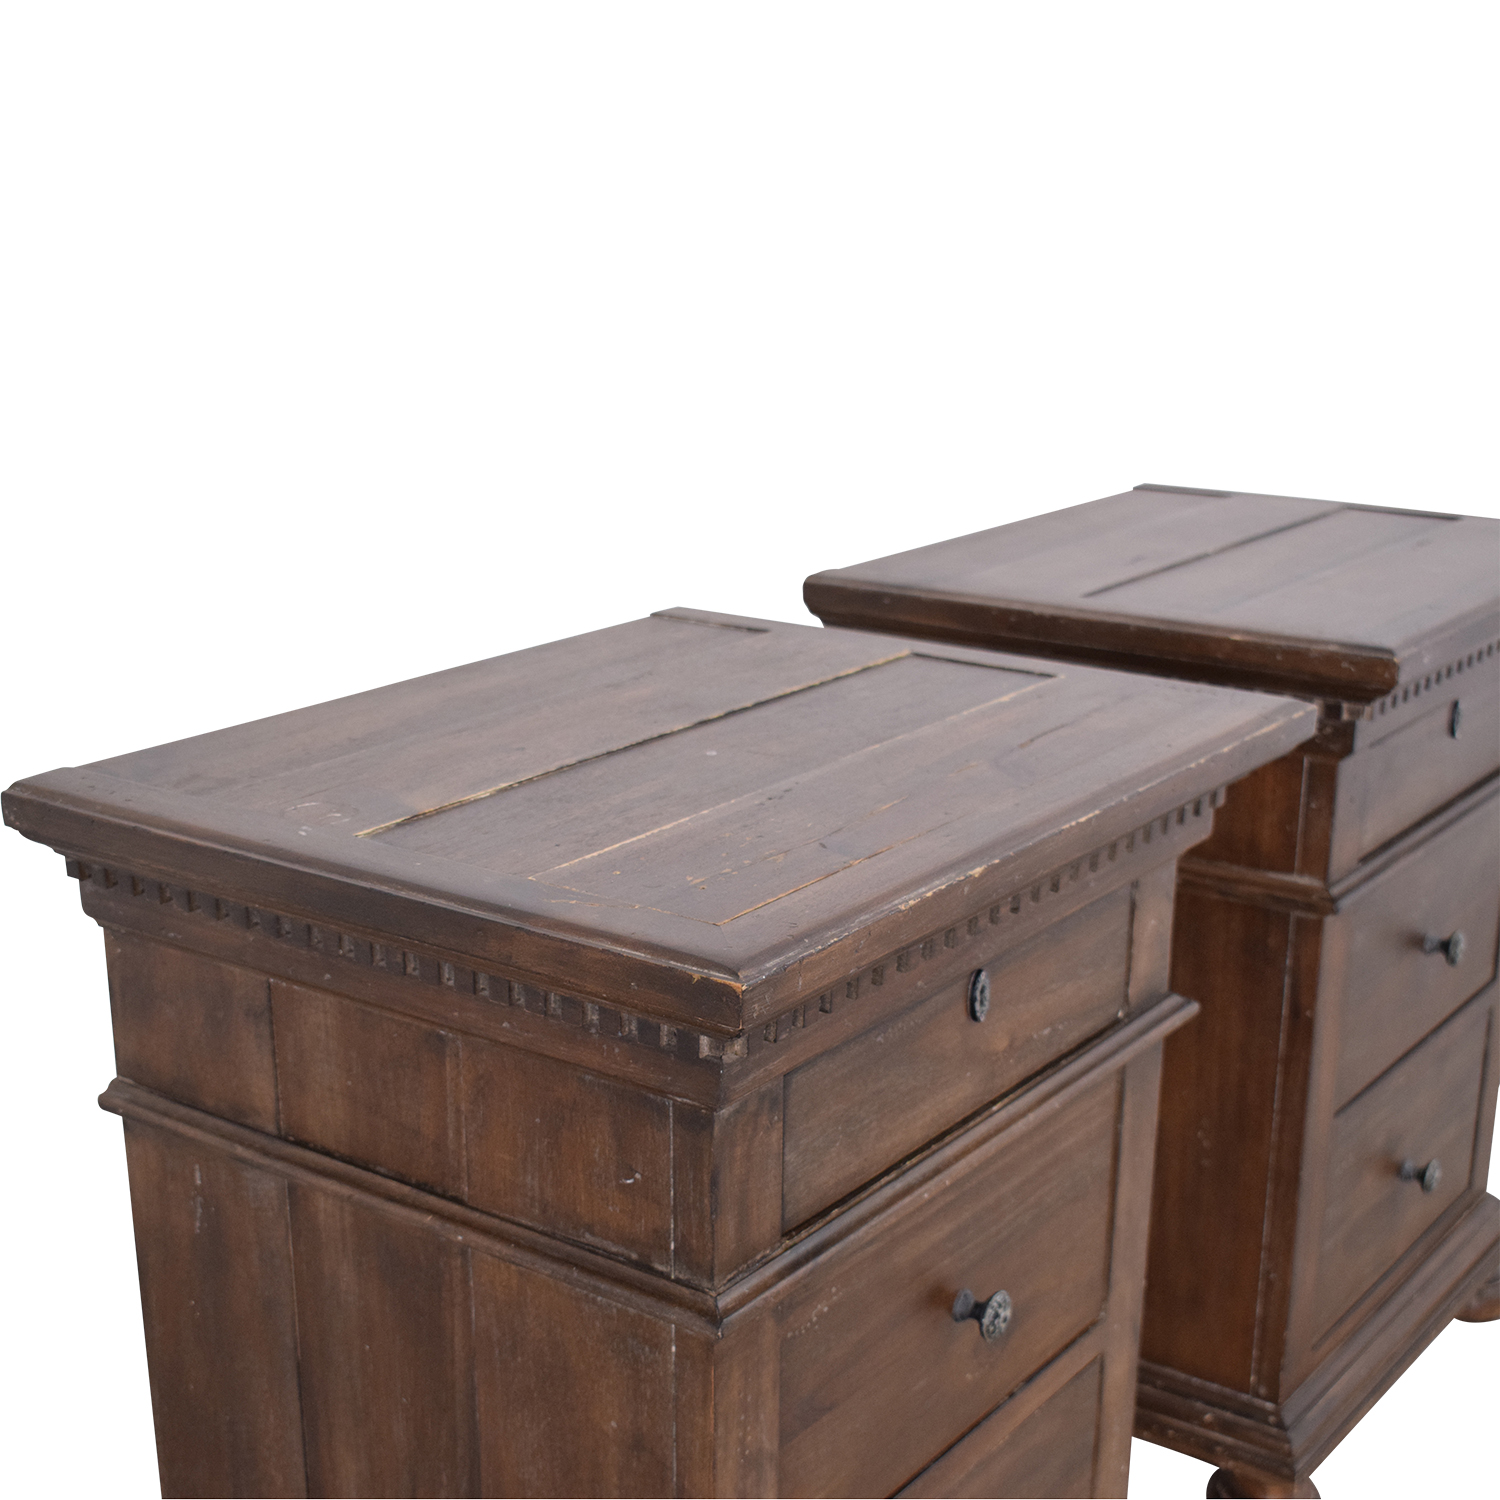 Restoration Hardware Restoration Hardware Saint James Closed Nightstands coupon